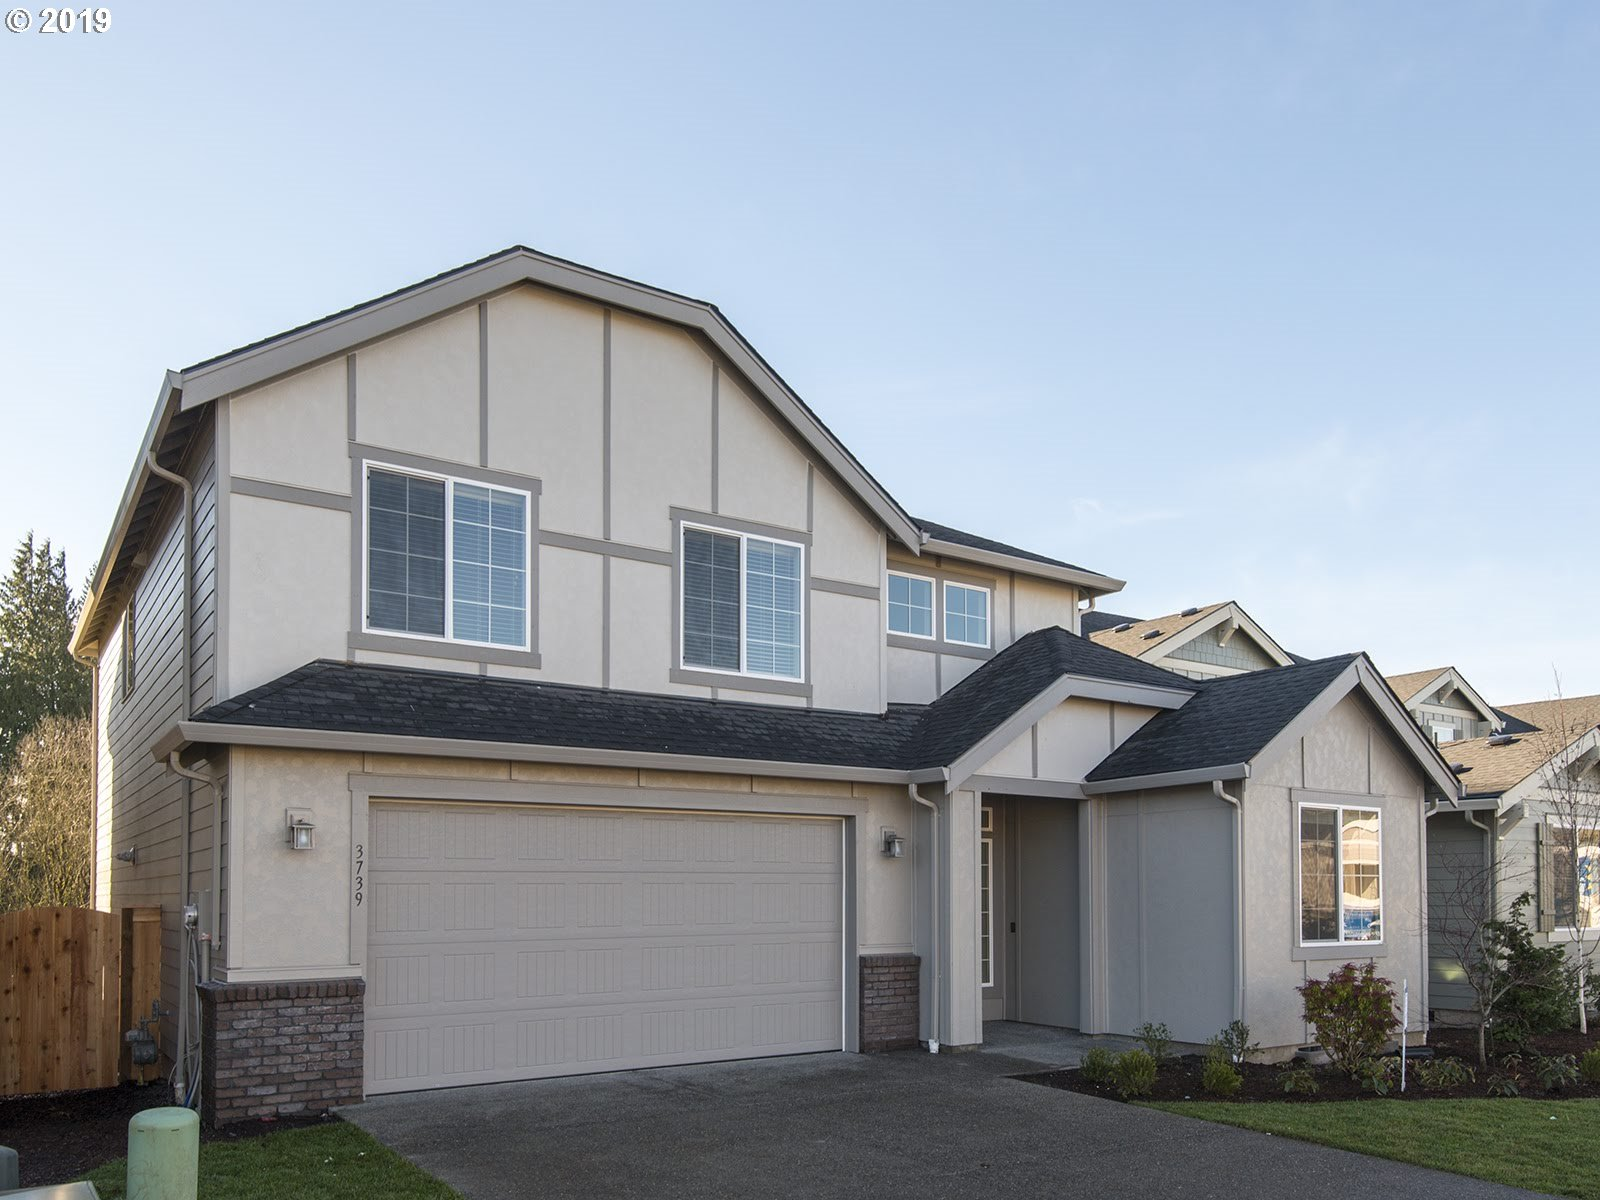 3739 S Willow Dr, Ridgefield, WA 98642